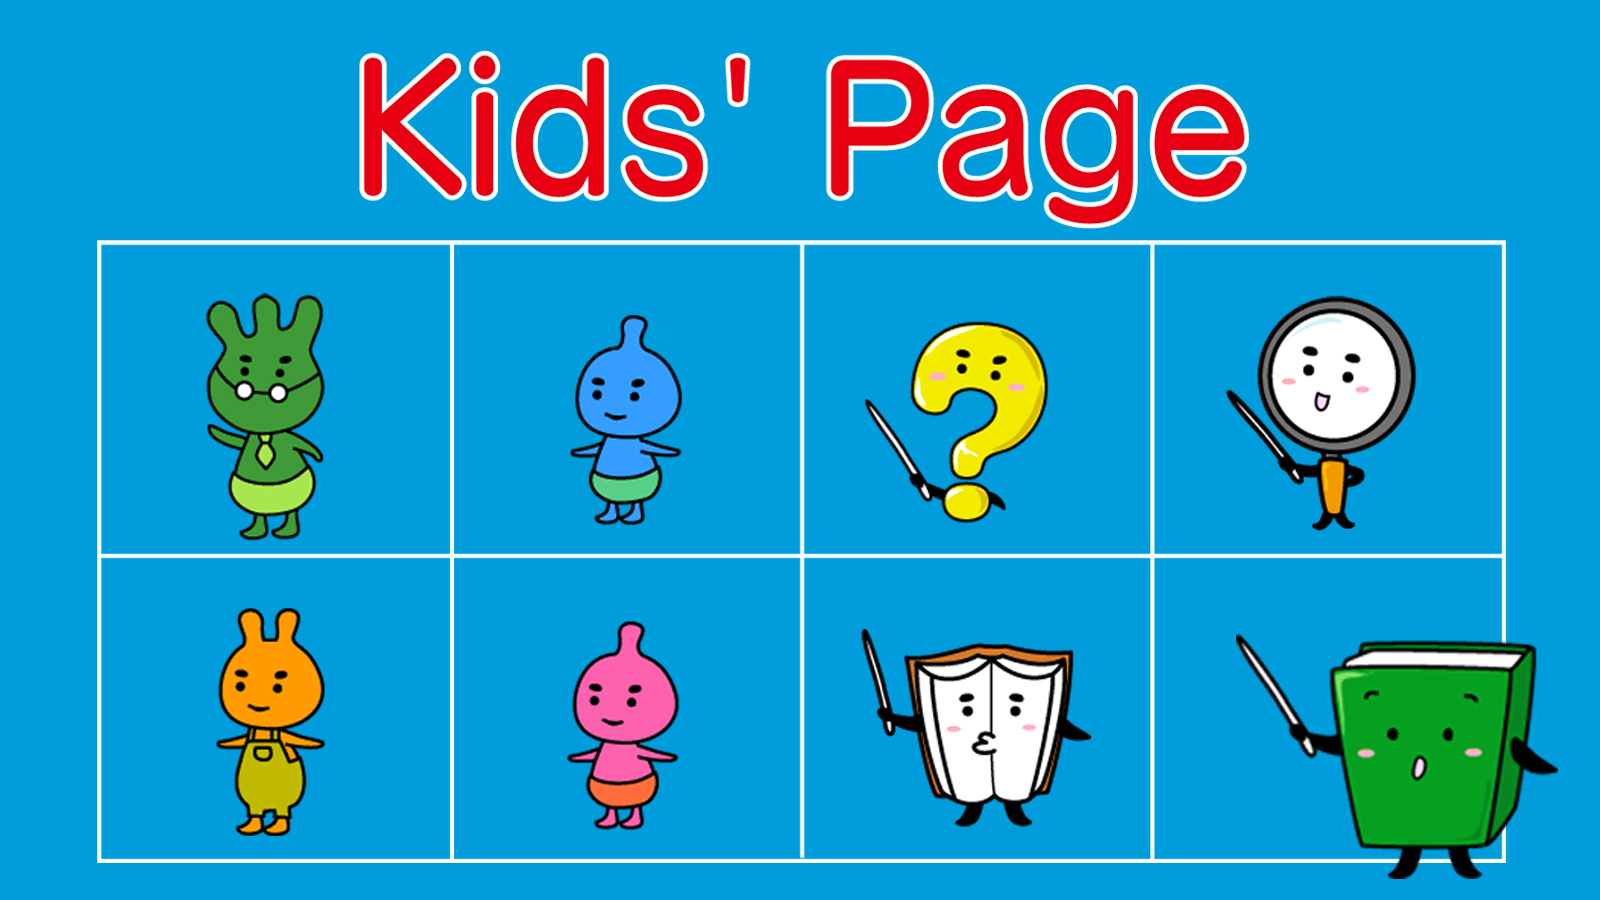 Kids' Page